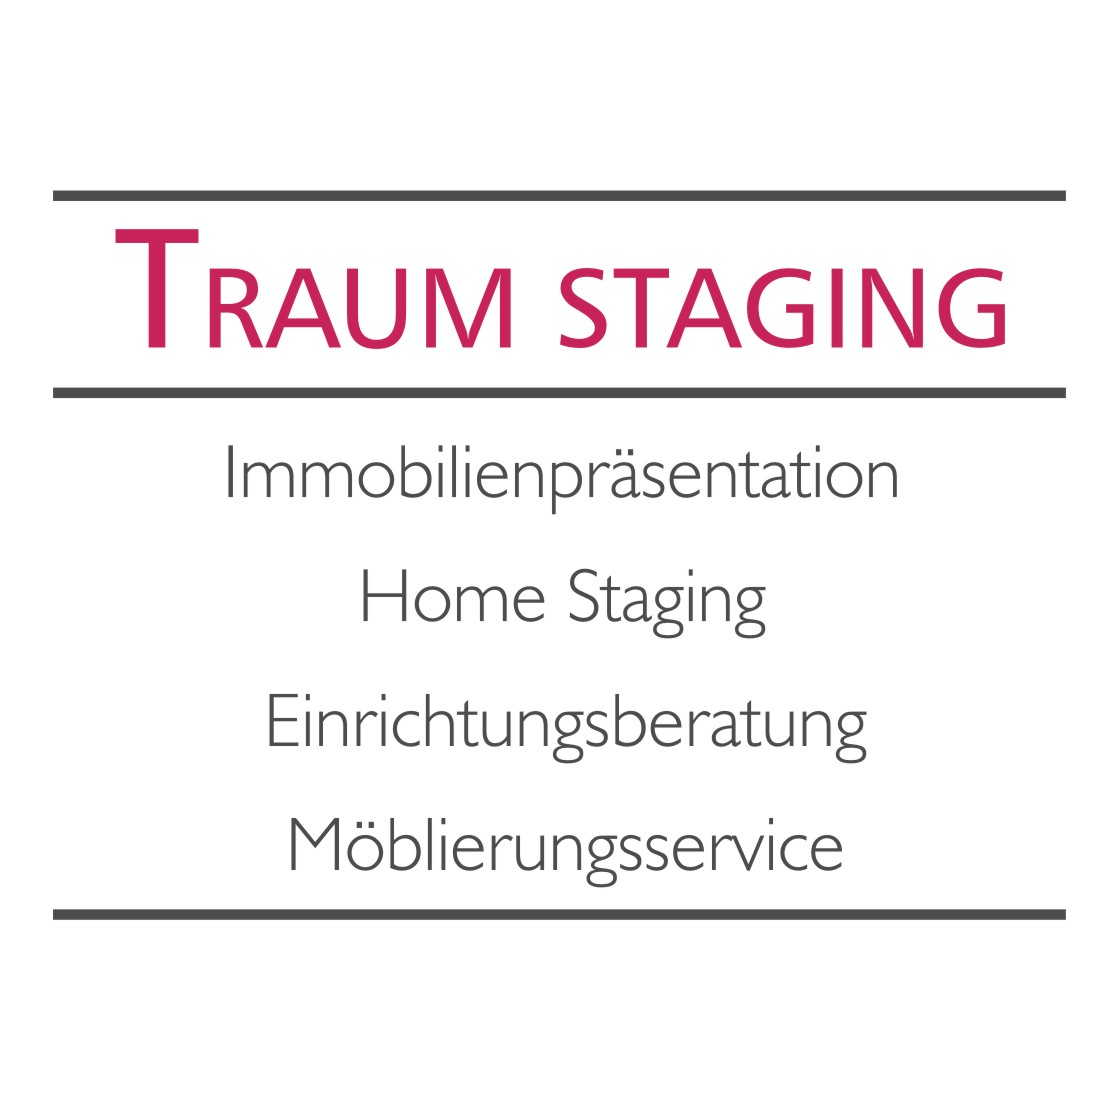 T-RaumStaging GmbH